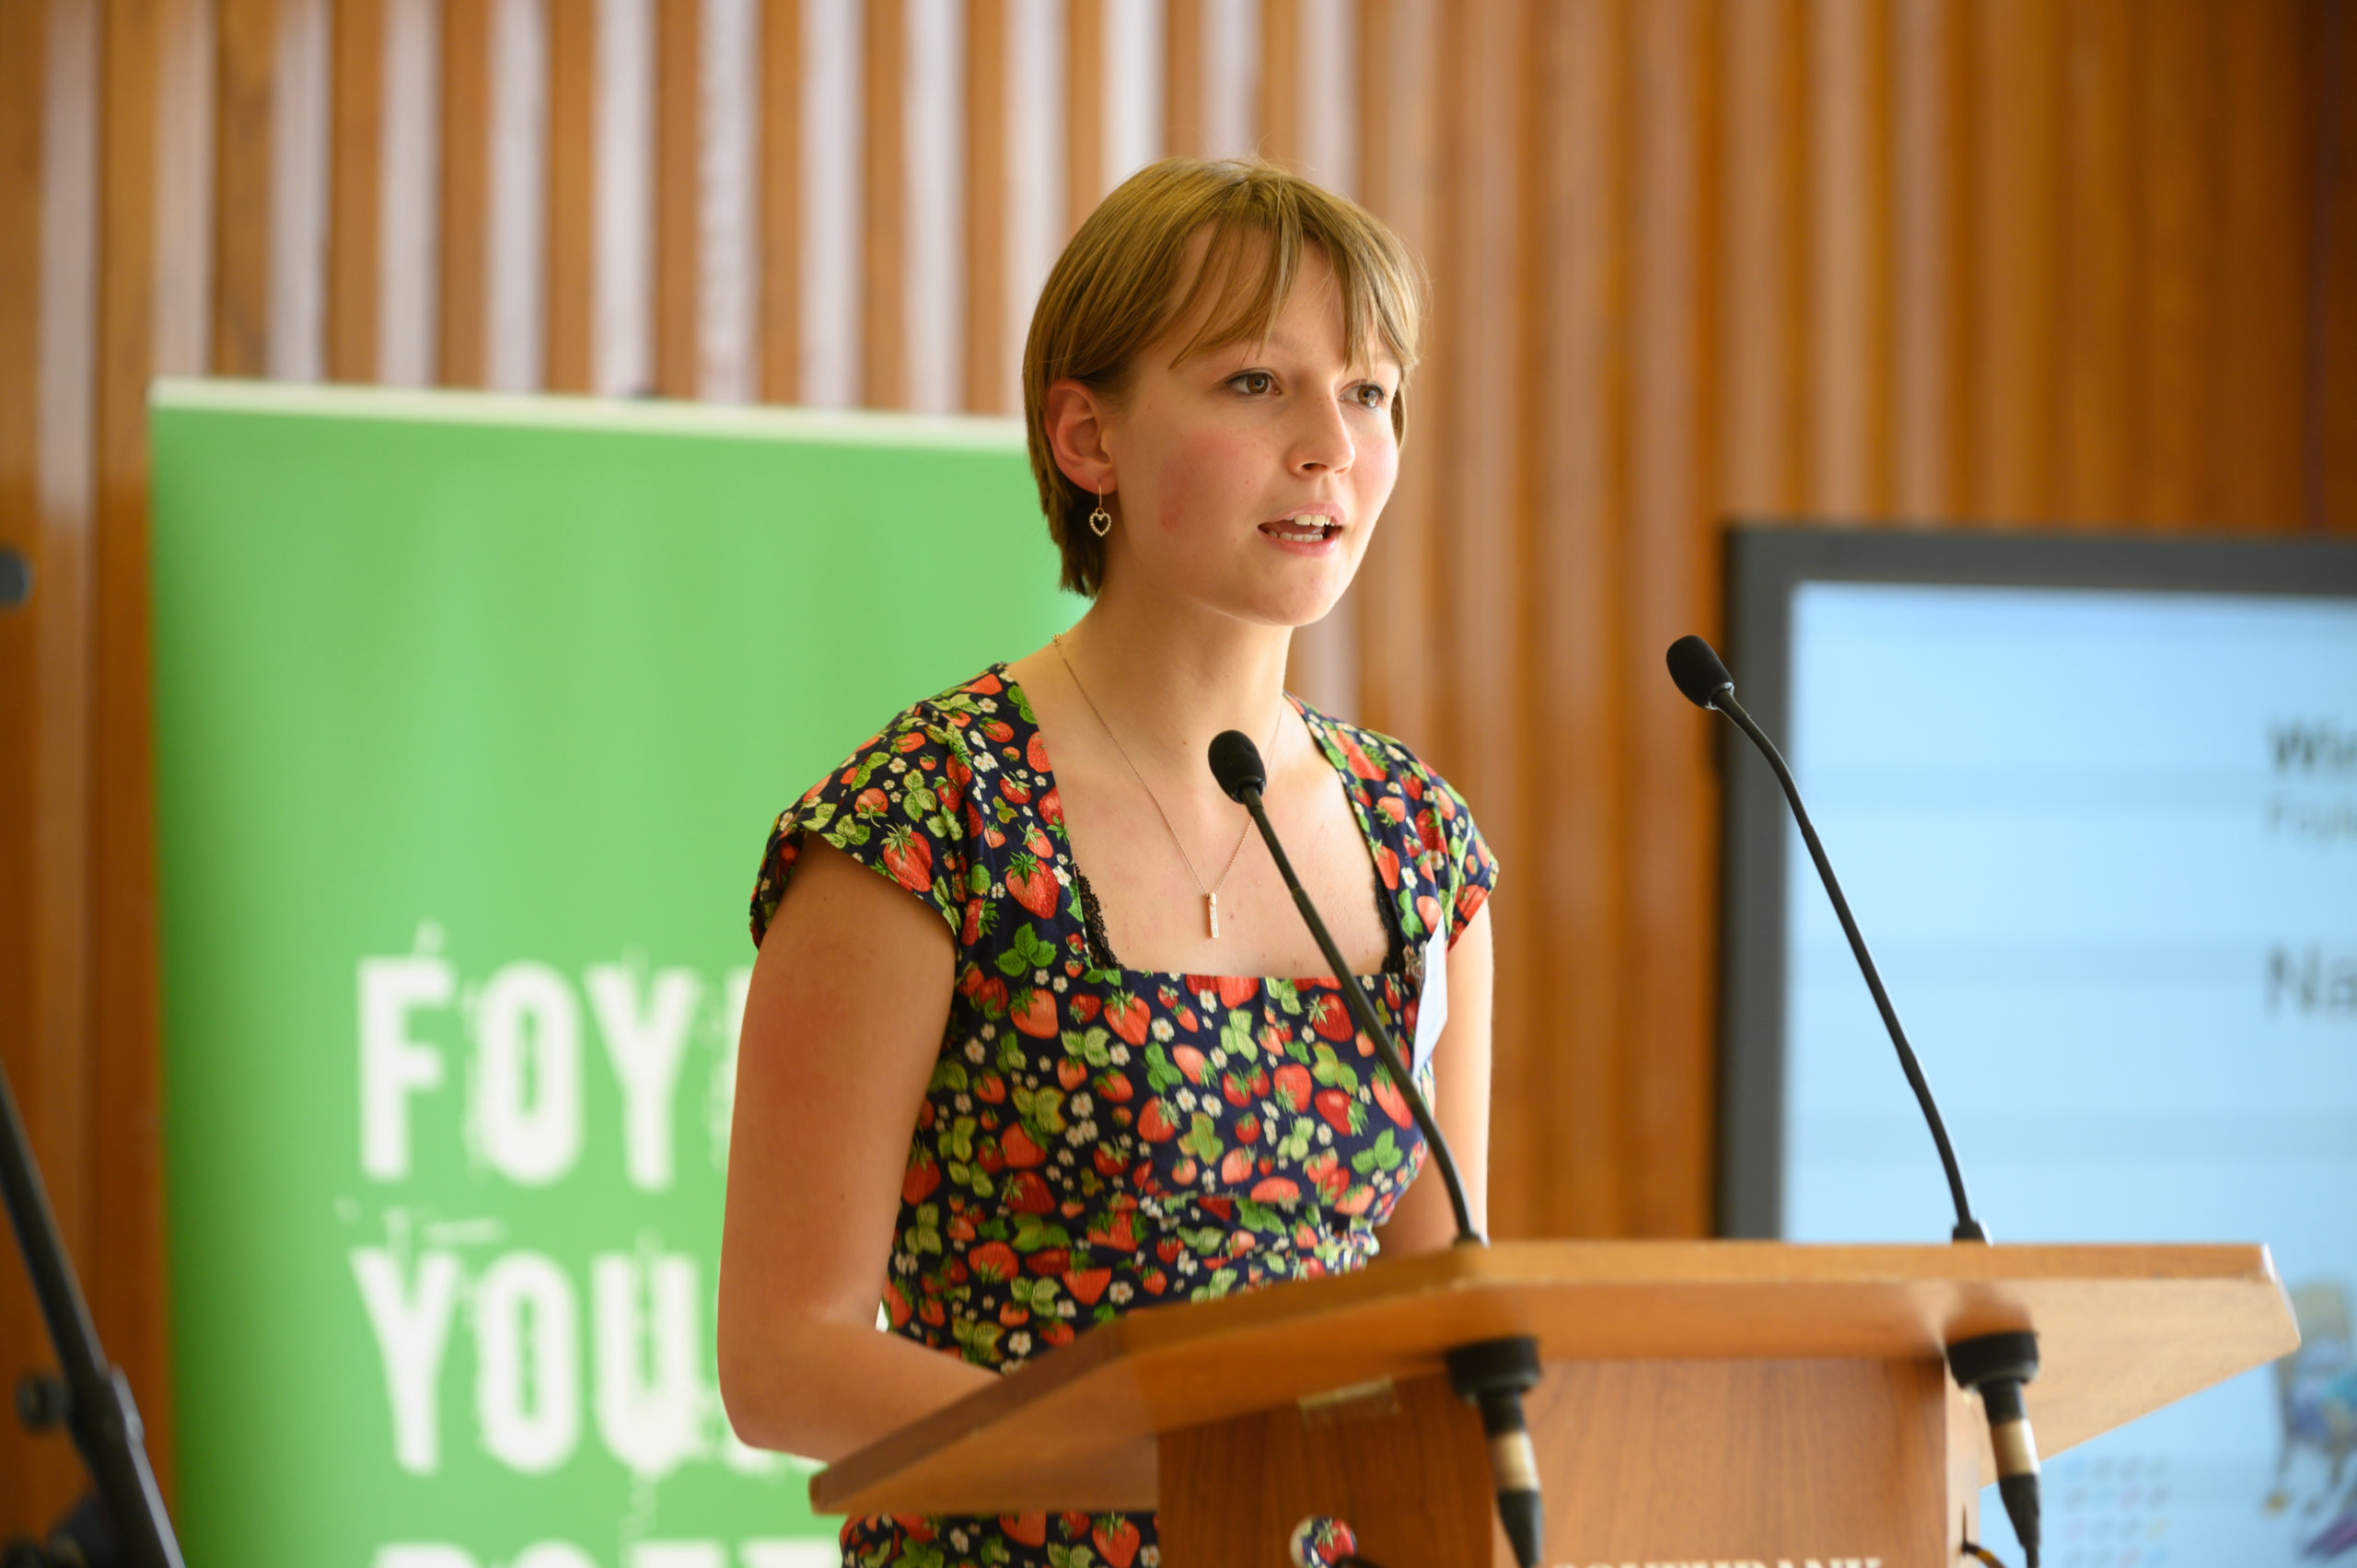 Photo of Nadia Lines reading at a podium at the Southbank Centre in front of a green Foyle Young Poets banner